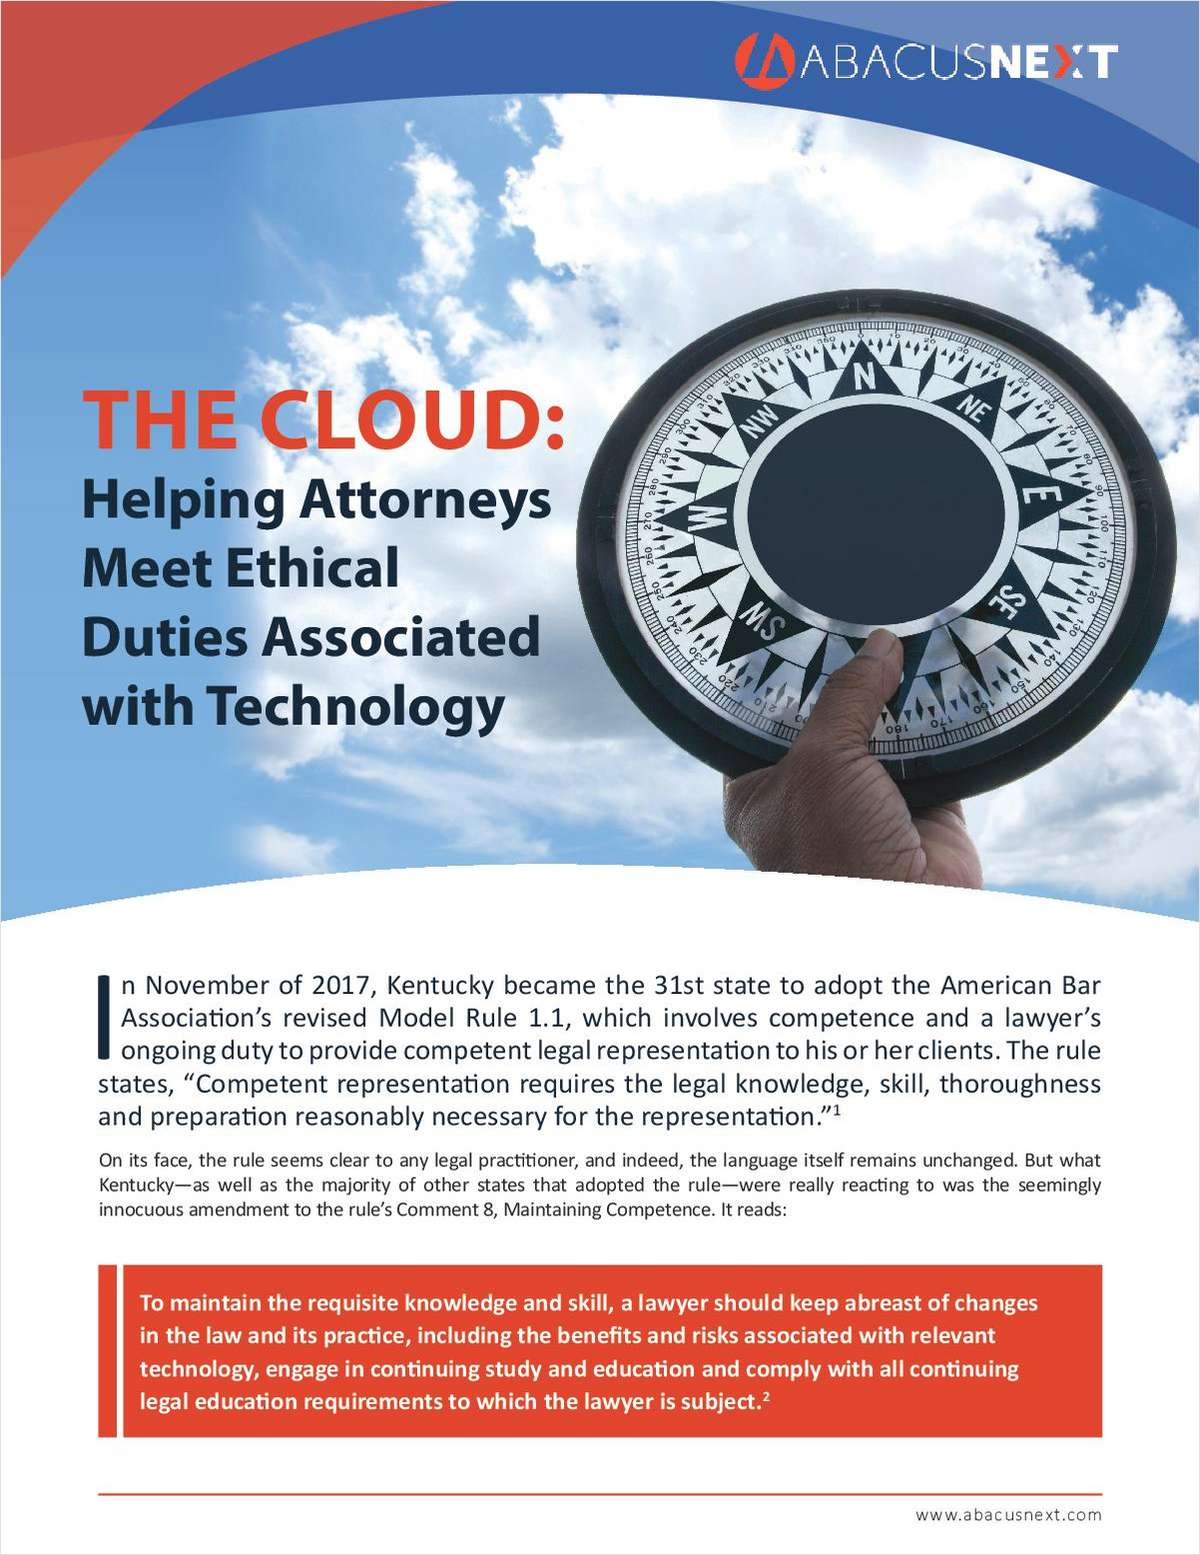 How the Cloud Helps Attorneys Meet Ethical Duties Associated with Technology